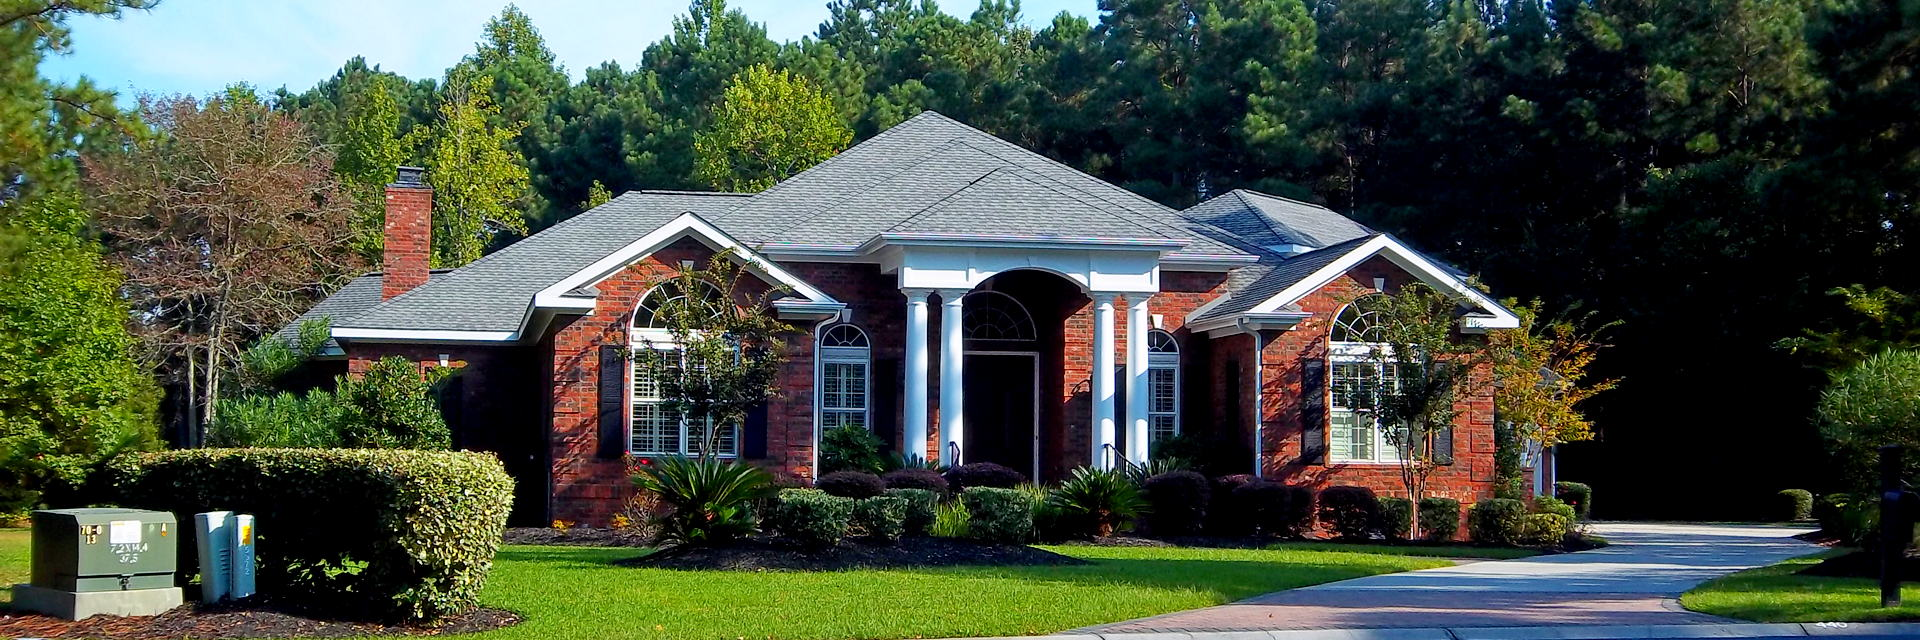 Homes For Sale In Myrtle Beach With Possible Owner Financing